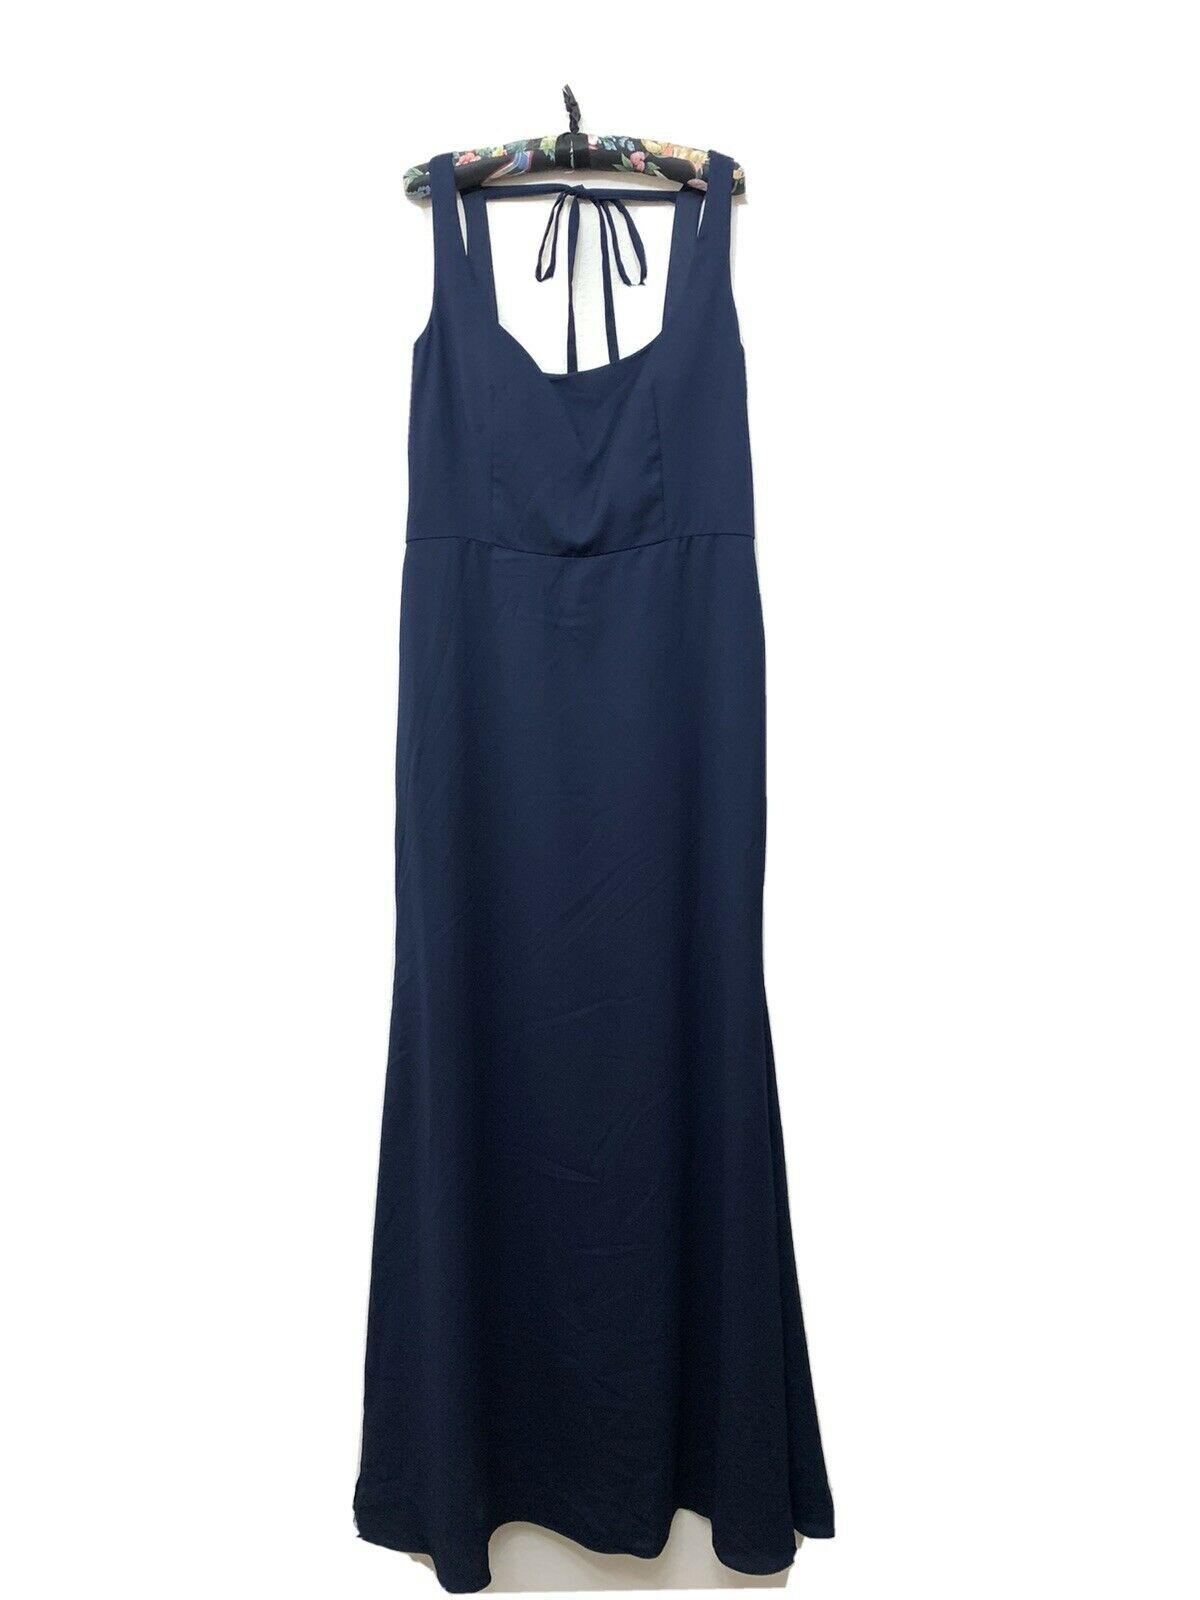 Occasions Hayley Paige Crepe Fit Flare Navy Blue Prom Bridesmaid Dress Sz 16 NEW